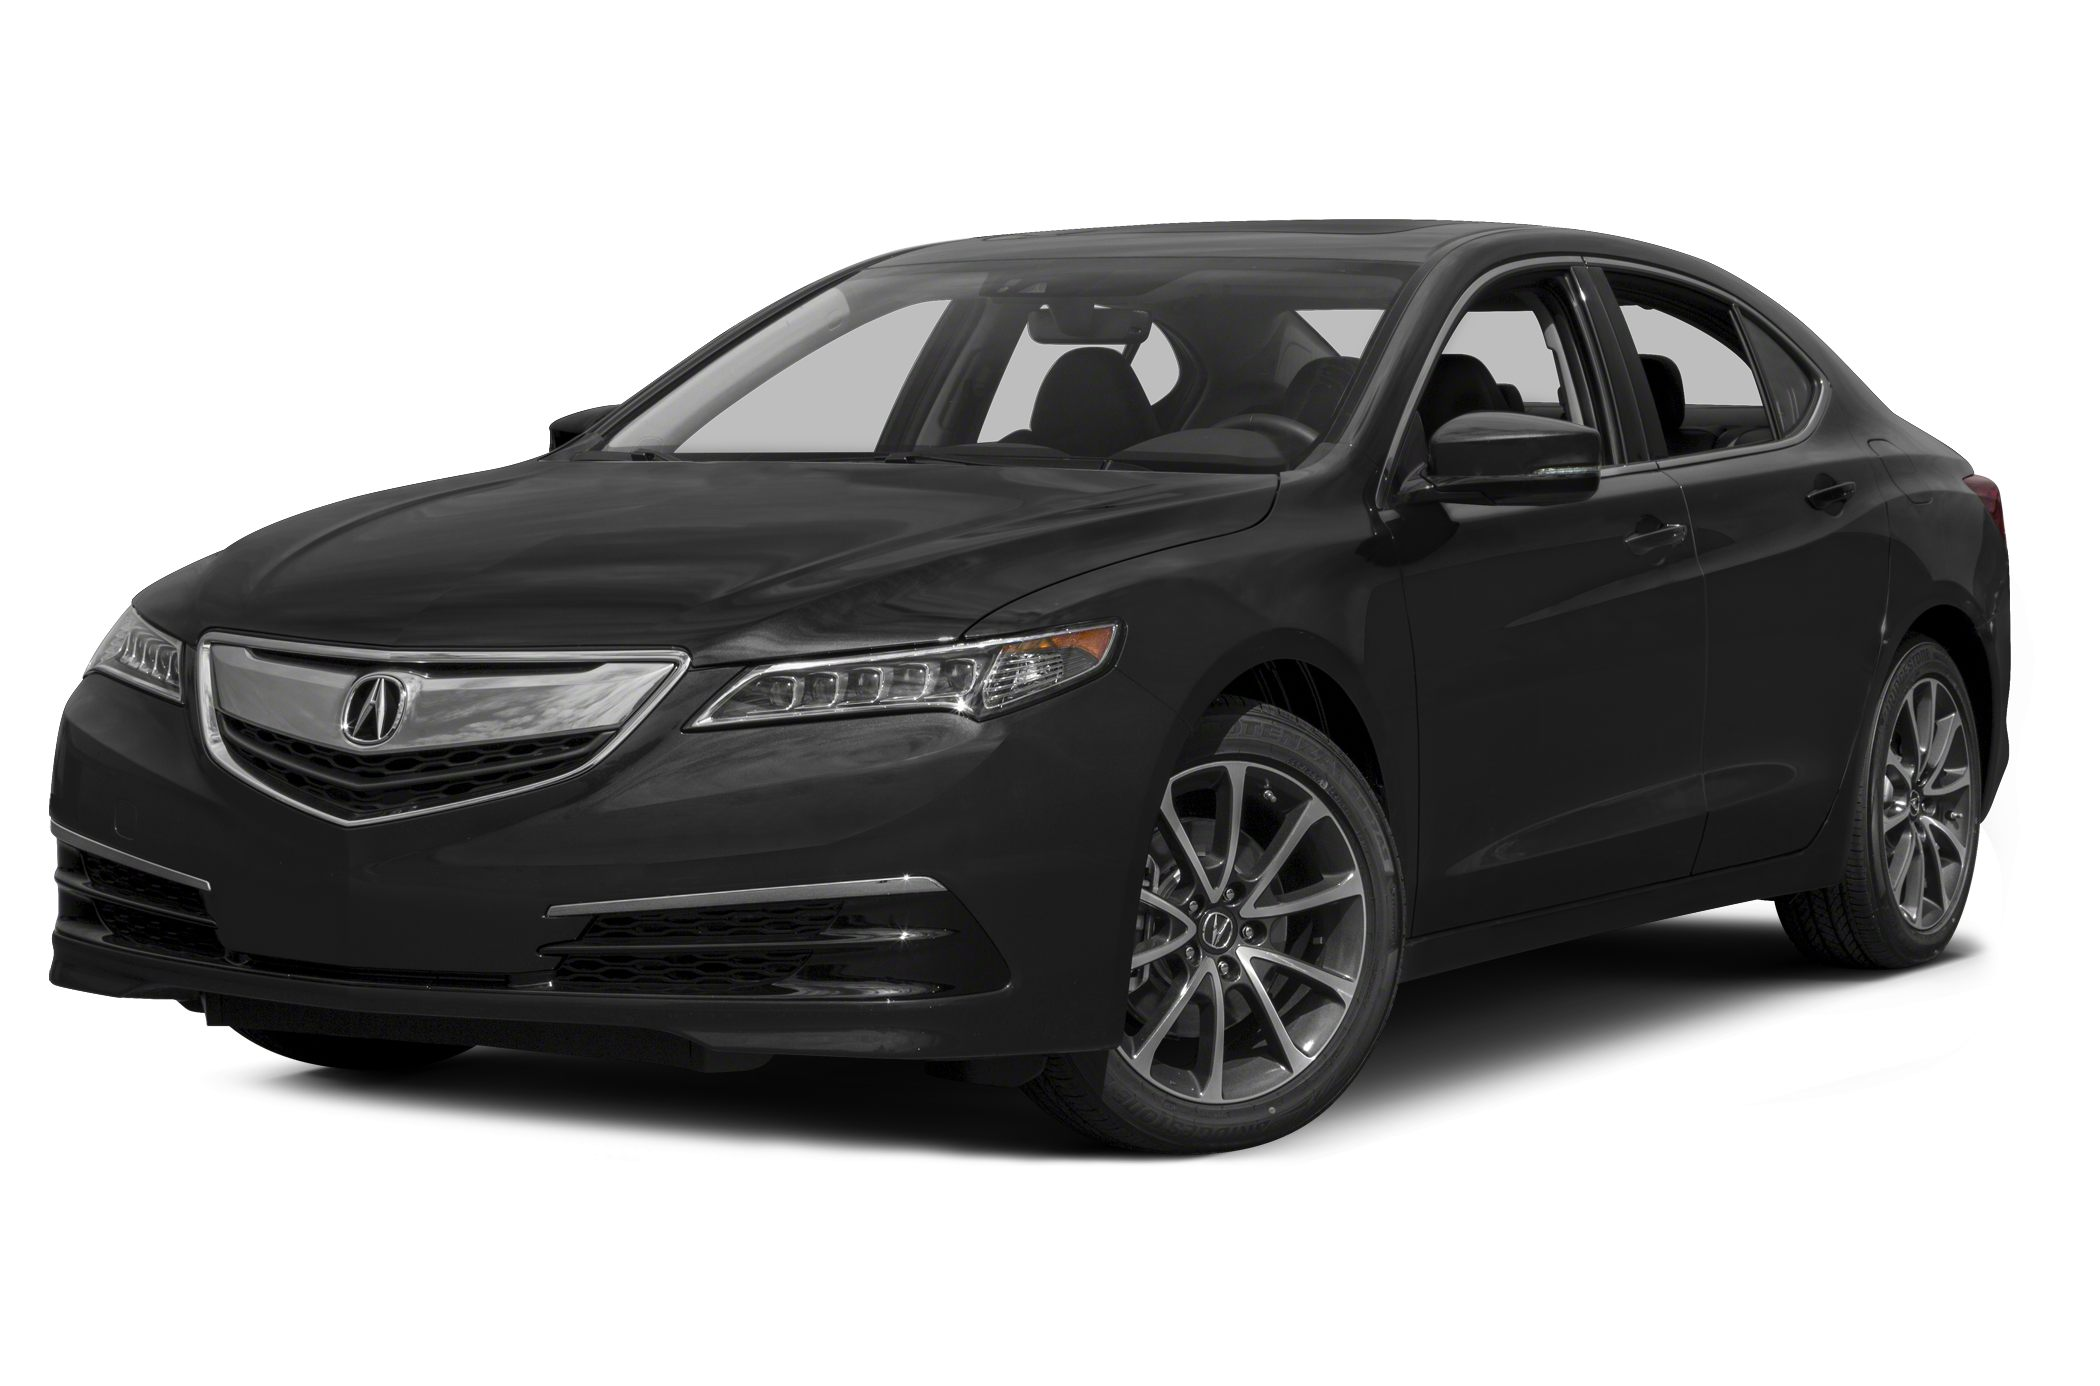 2015 Acura TLX V6 Tech Sedan for sale in Gainesville for $40,295 with 0 miles.